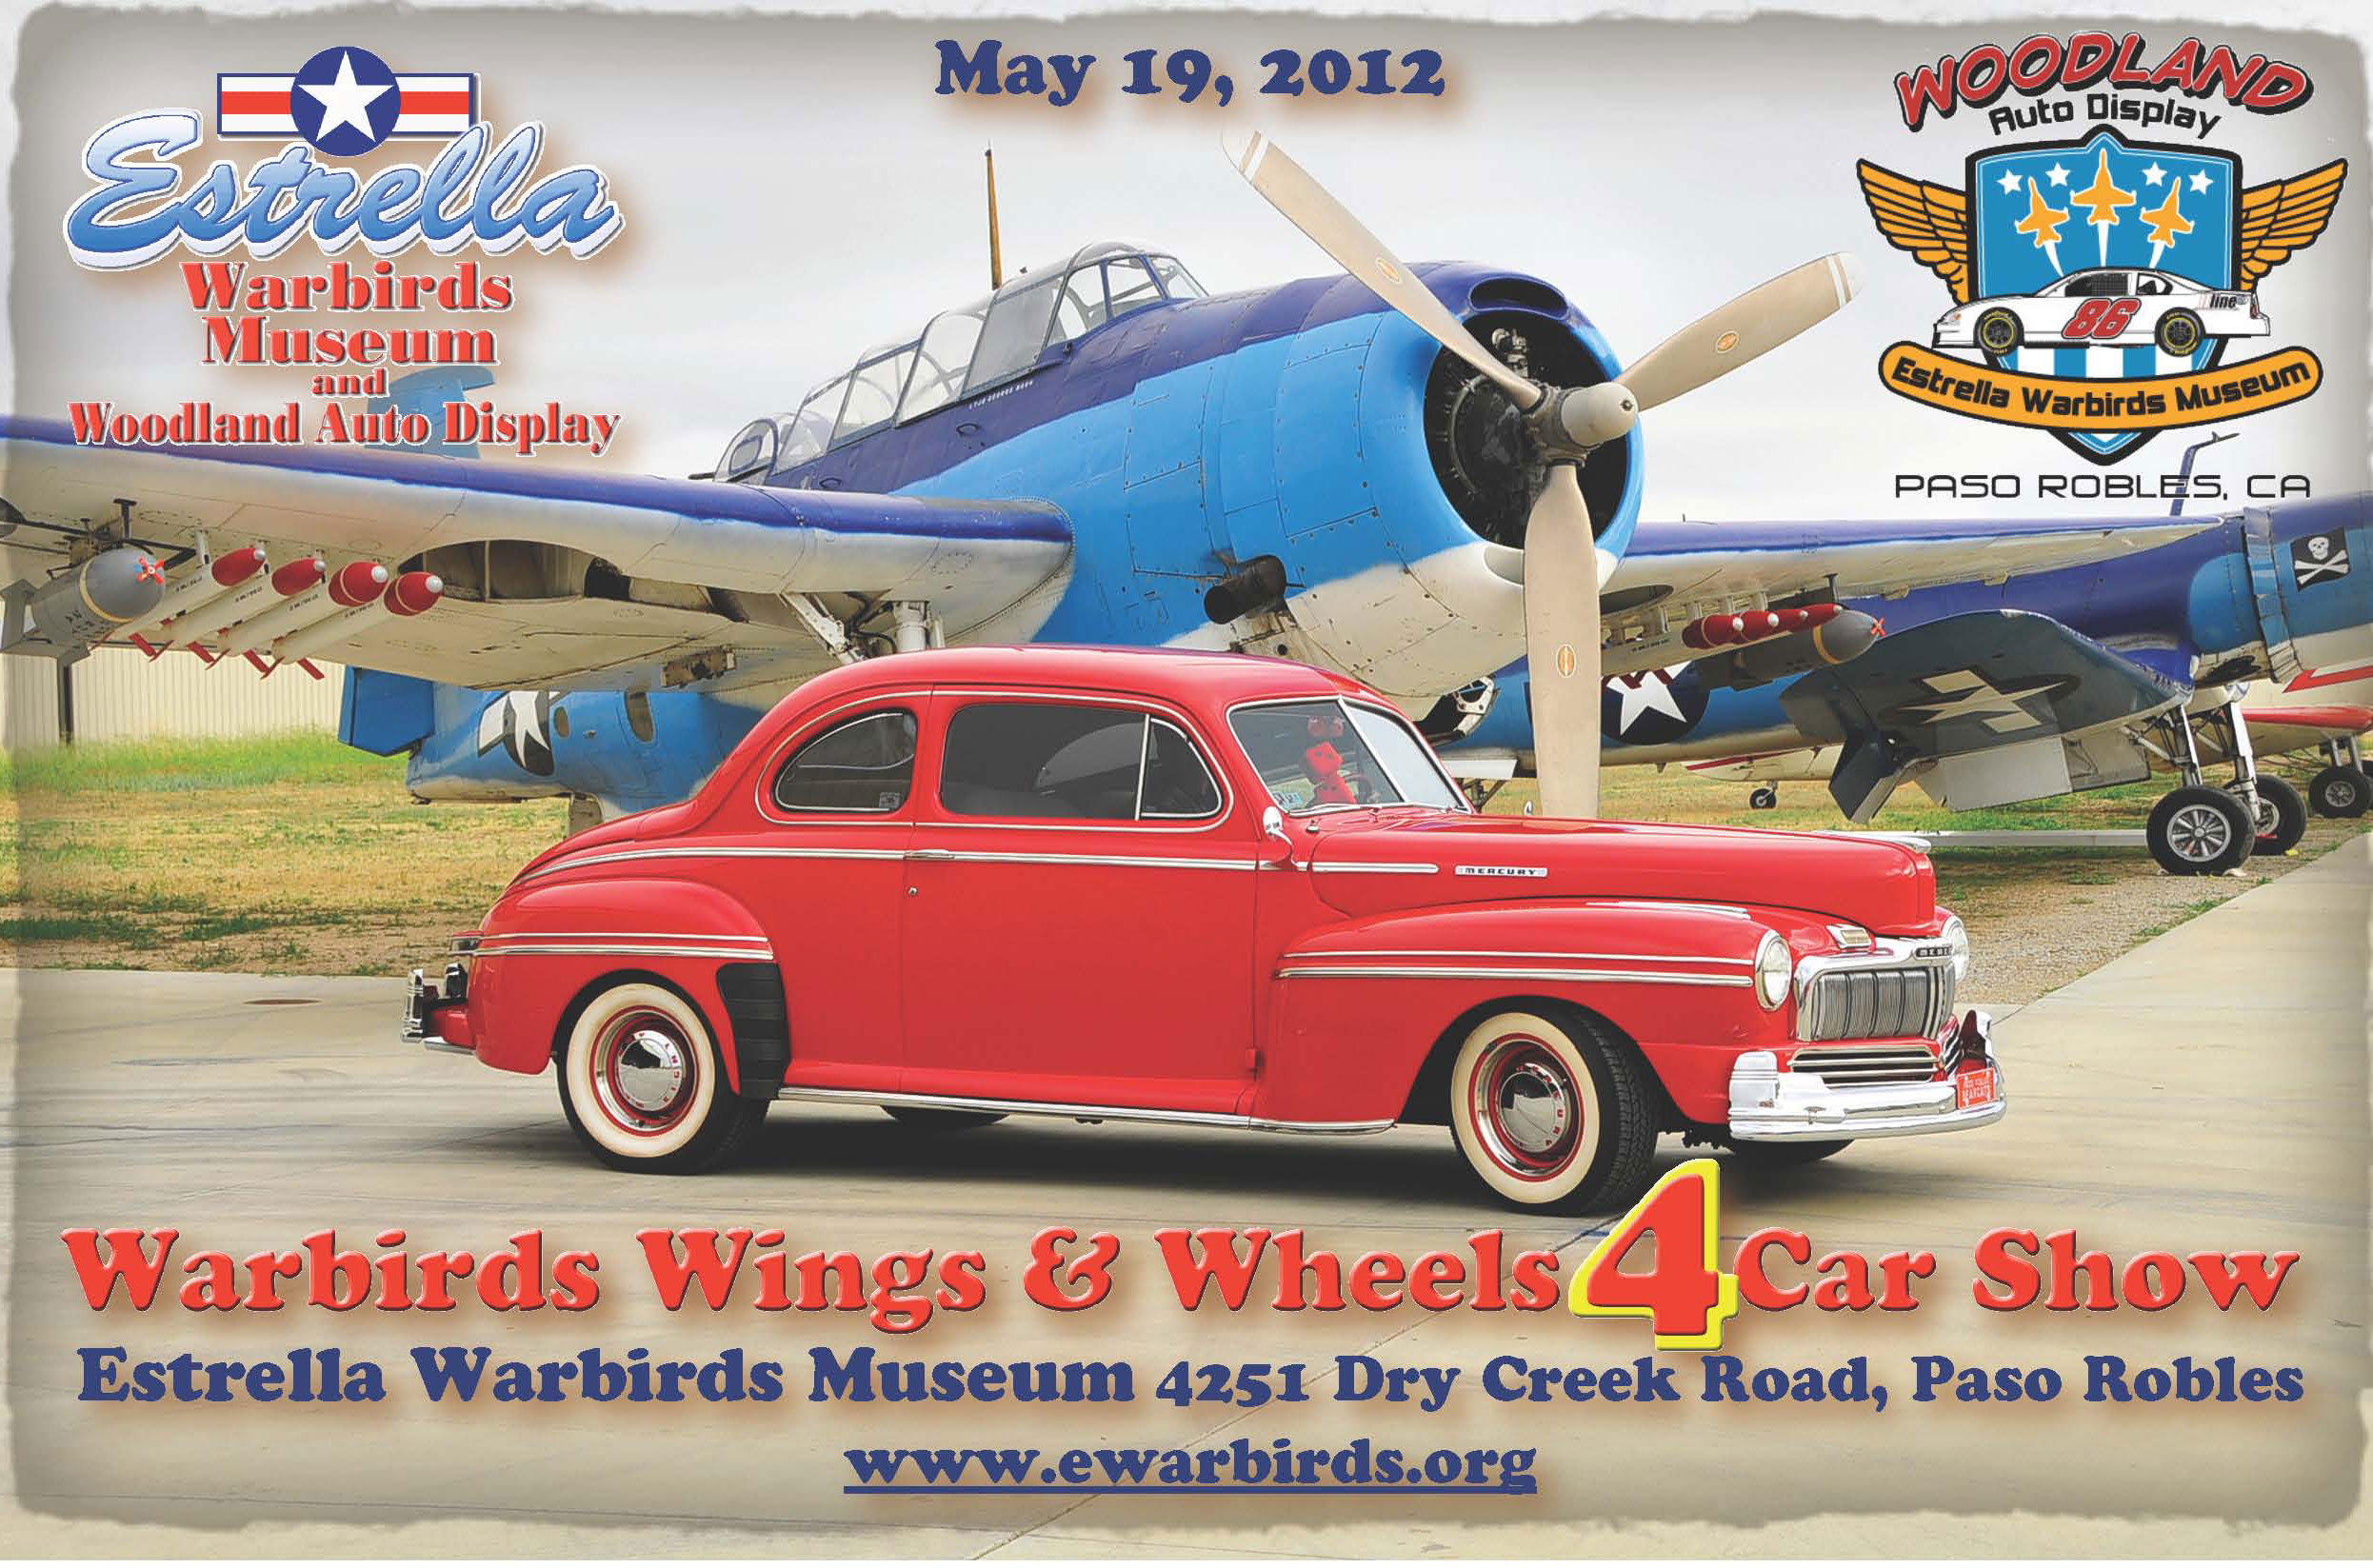 Warbirds Wings & Wheels 4